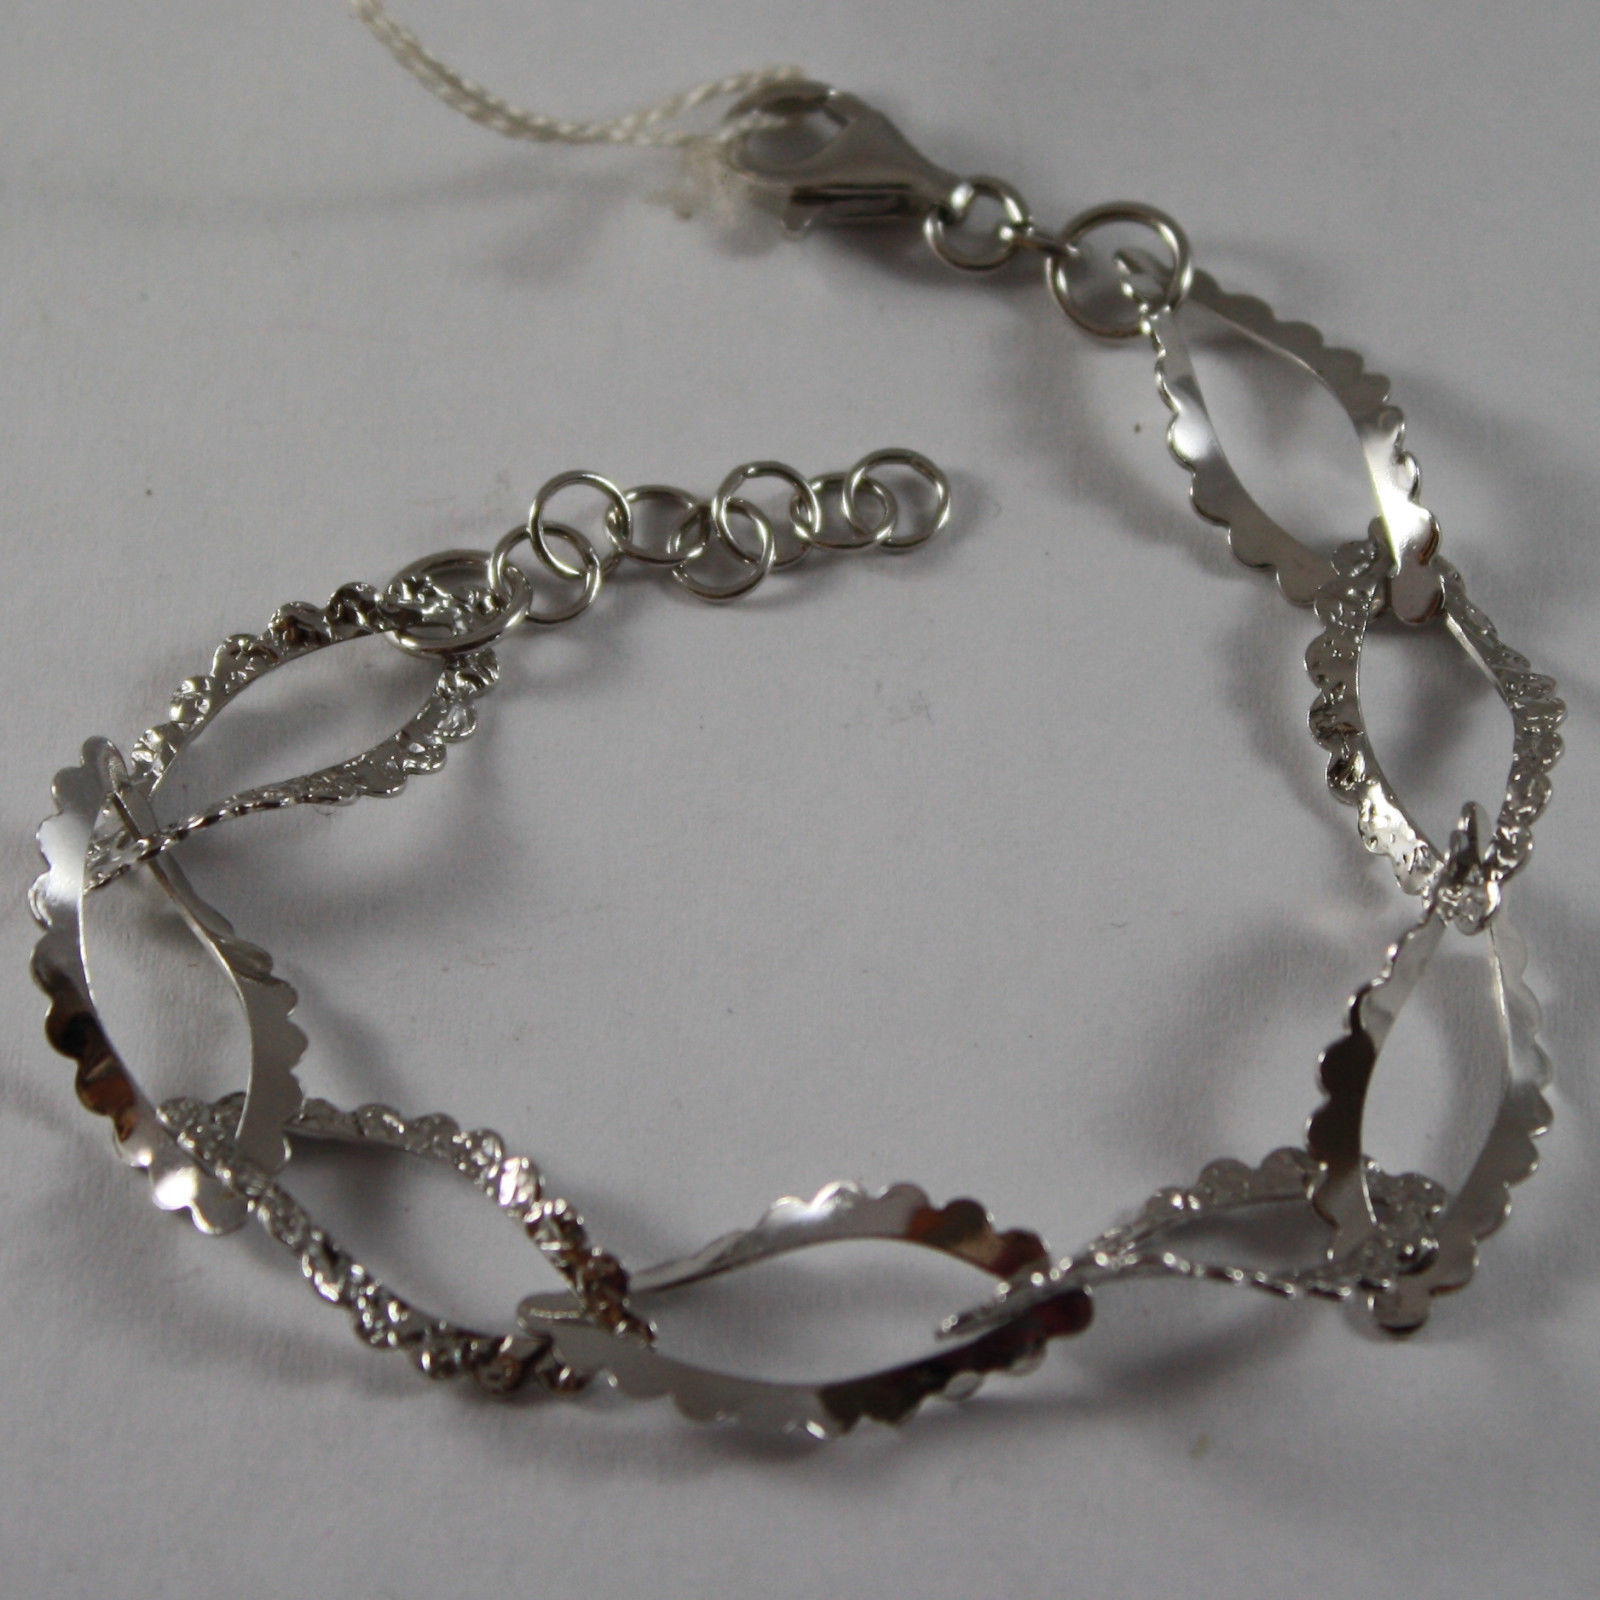 .925 RHODIUM SILVER BRACELET WITH GLOSSY AND HAMMERED LEAVES